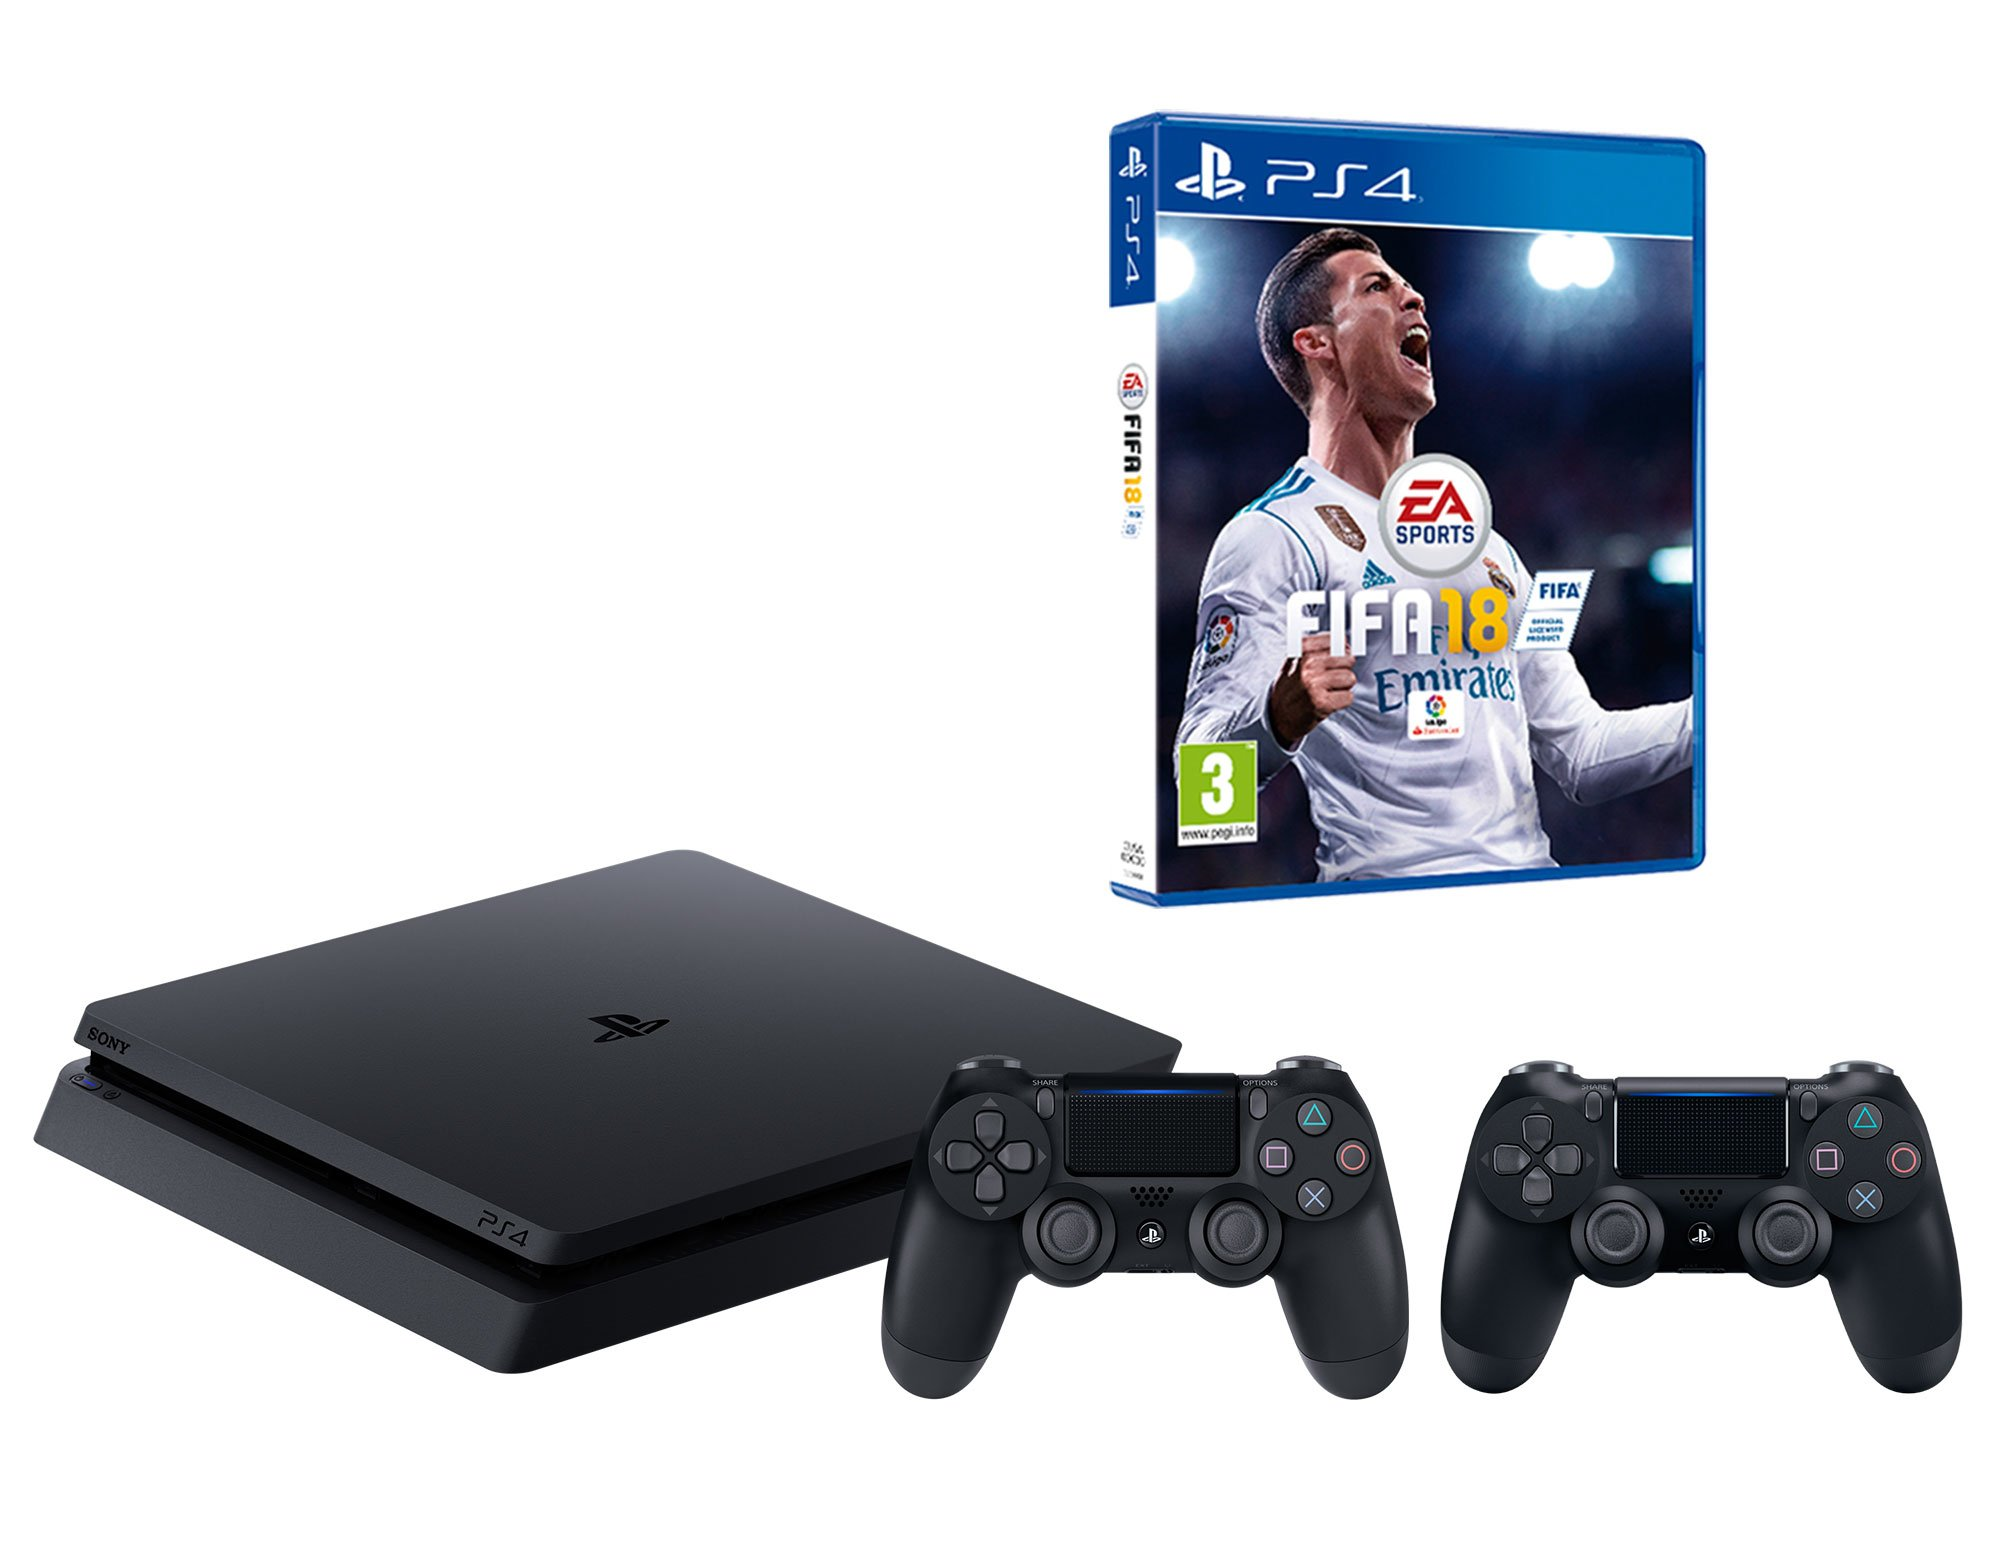 PS4 Slim 500 GB negro Playstation 4 – FIFA 18 + 2 mandos DualShock 4: Amazon.es: Informática